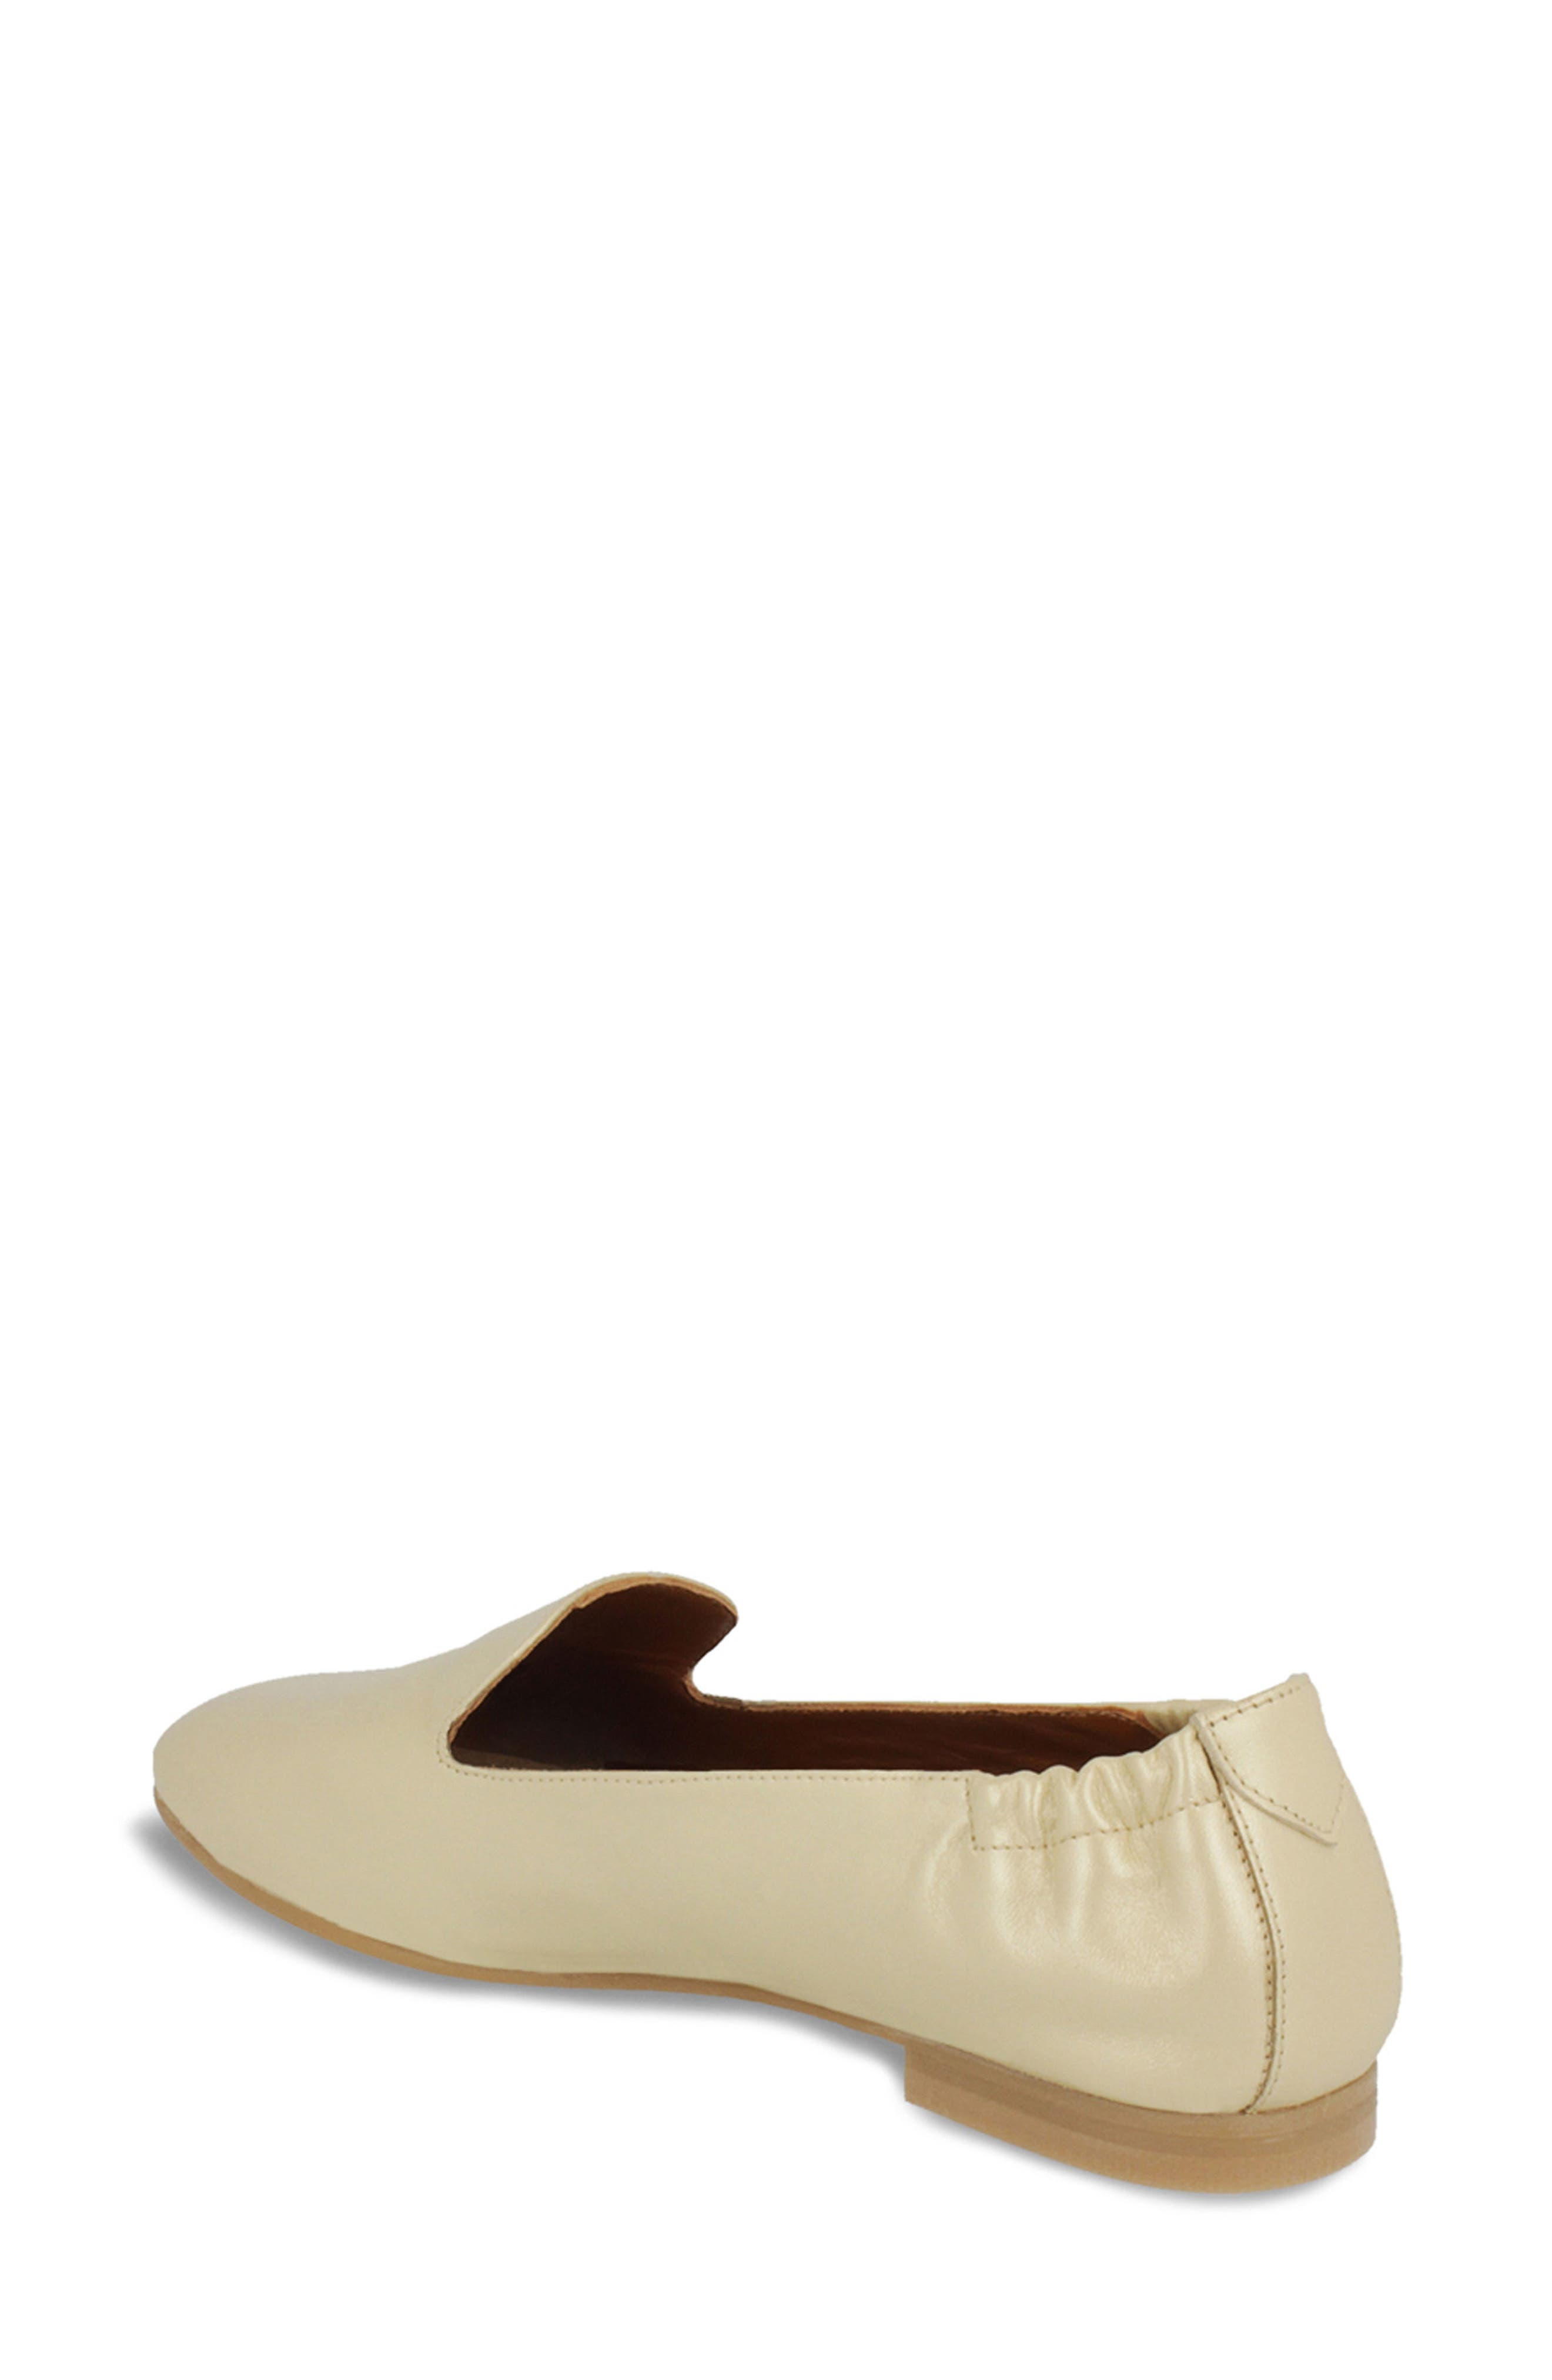 Bianca Loafer,                             Alternate thumbnail 2, color,                             PEARLIZED GOLD LEATHER